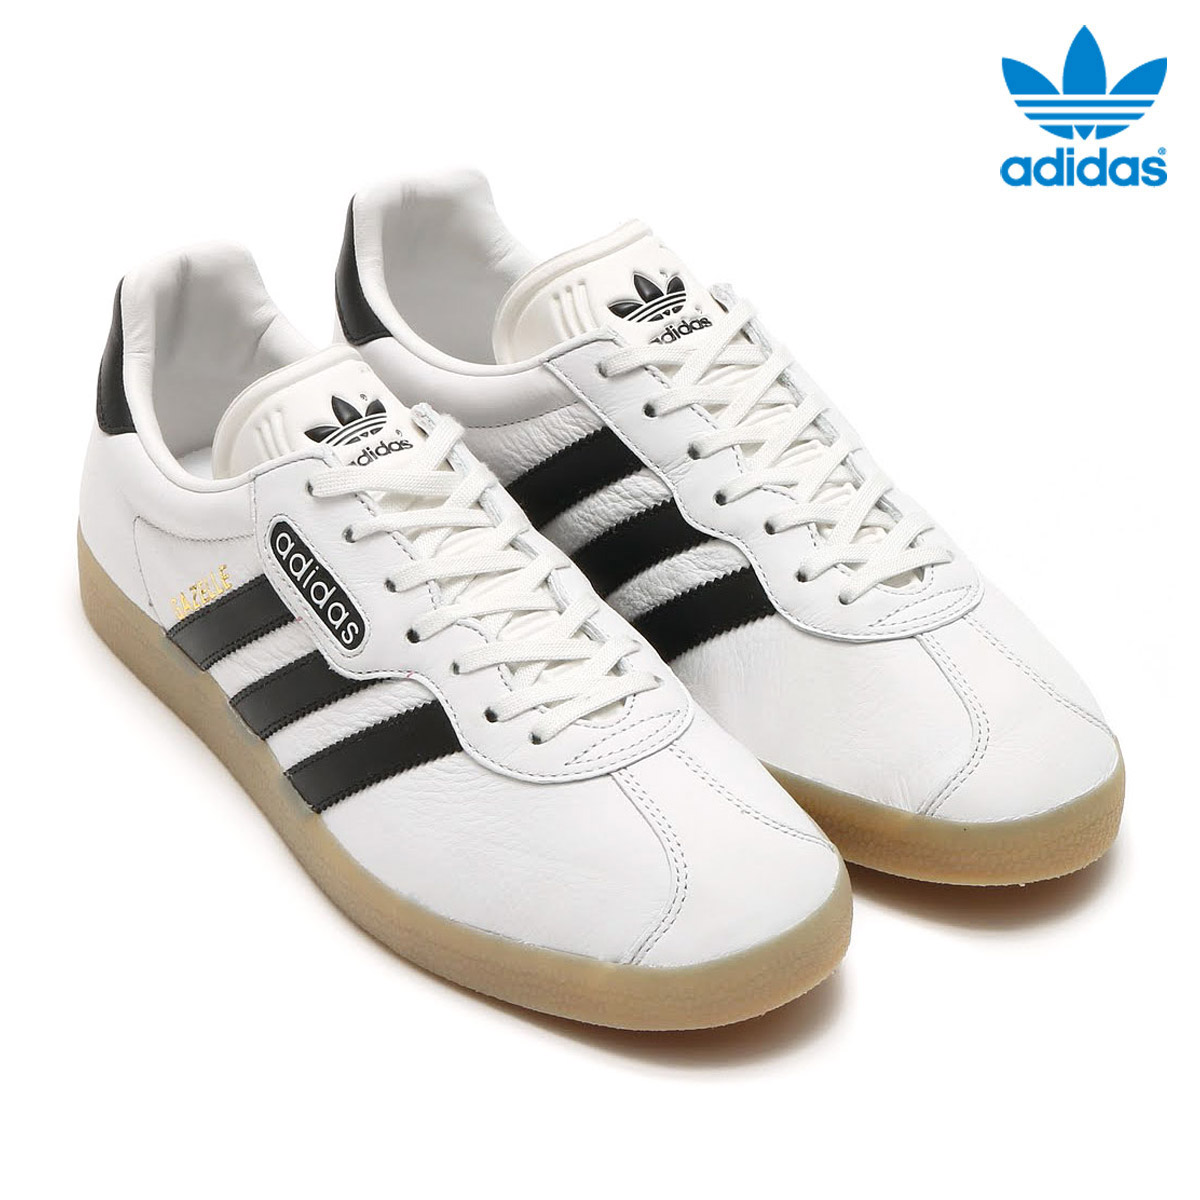 adidas Originals GAZELLE SP (Adidas gazelle SP) (Vintage White S15/Core Black/Gum4)